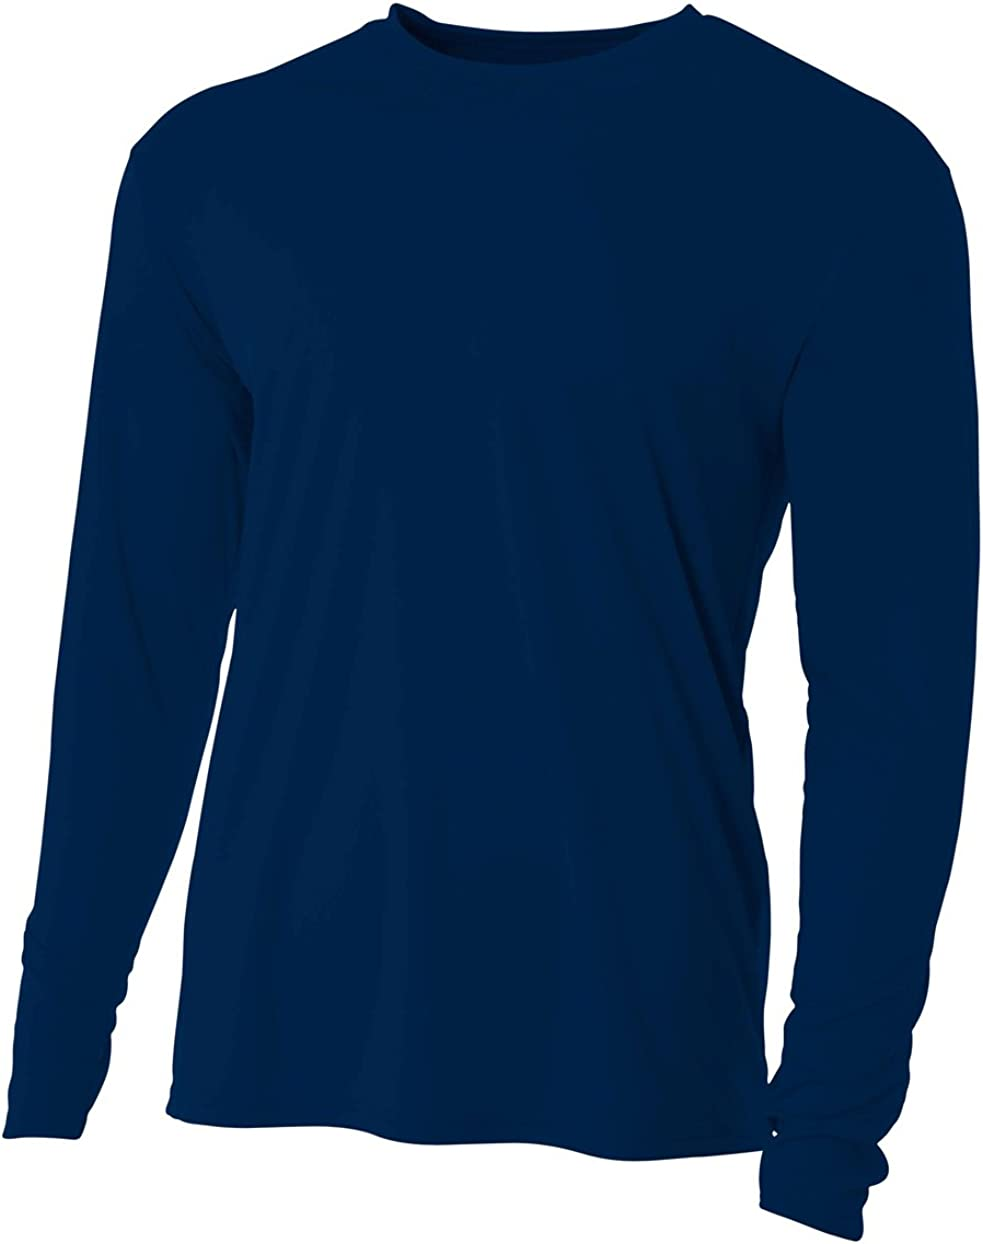 A4 Mens Cooling Performance Crew Long Sleeve Tee